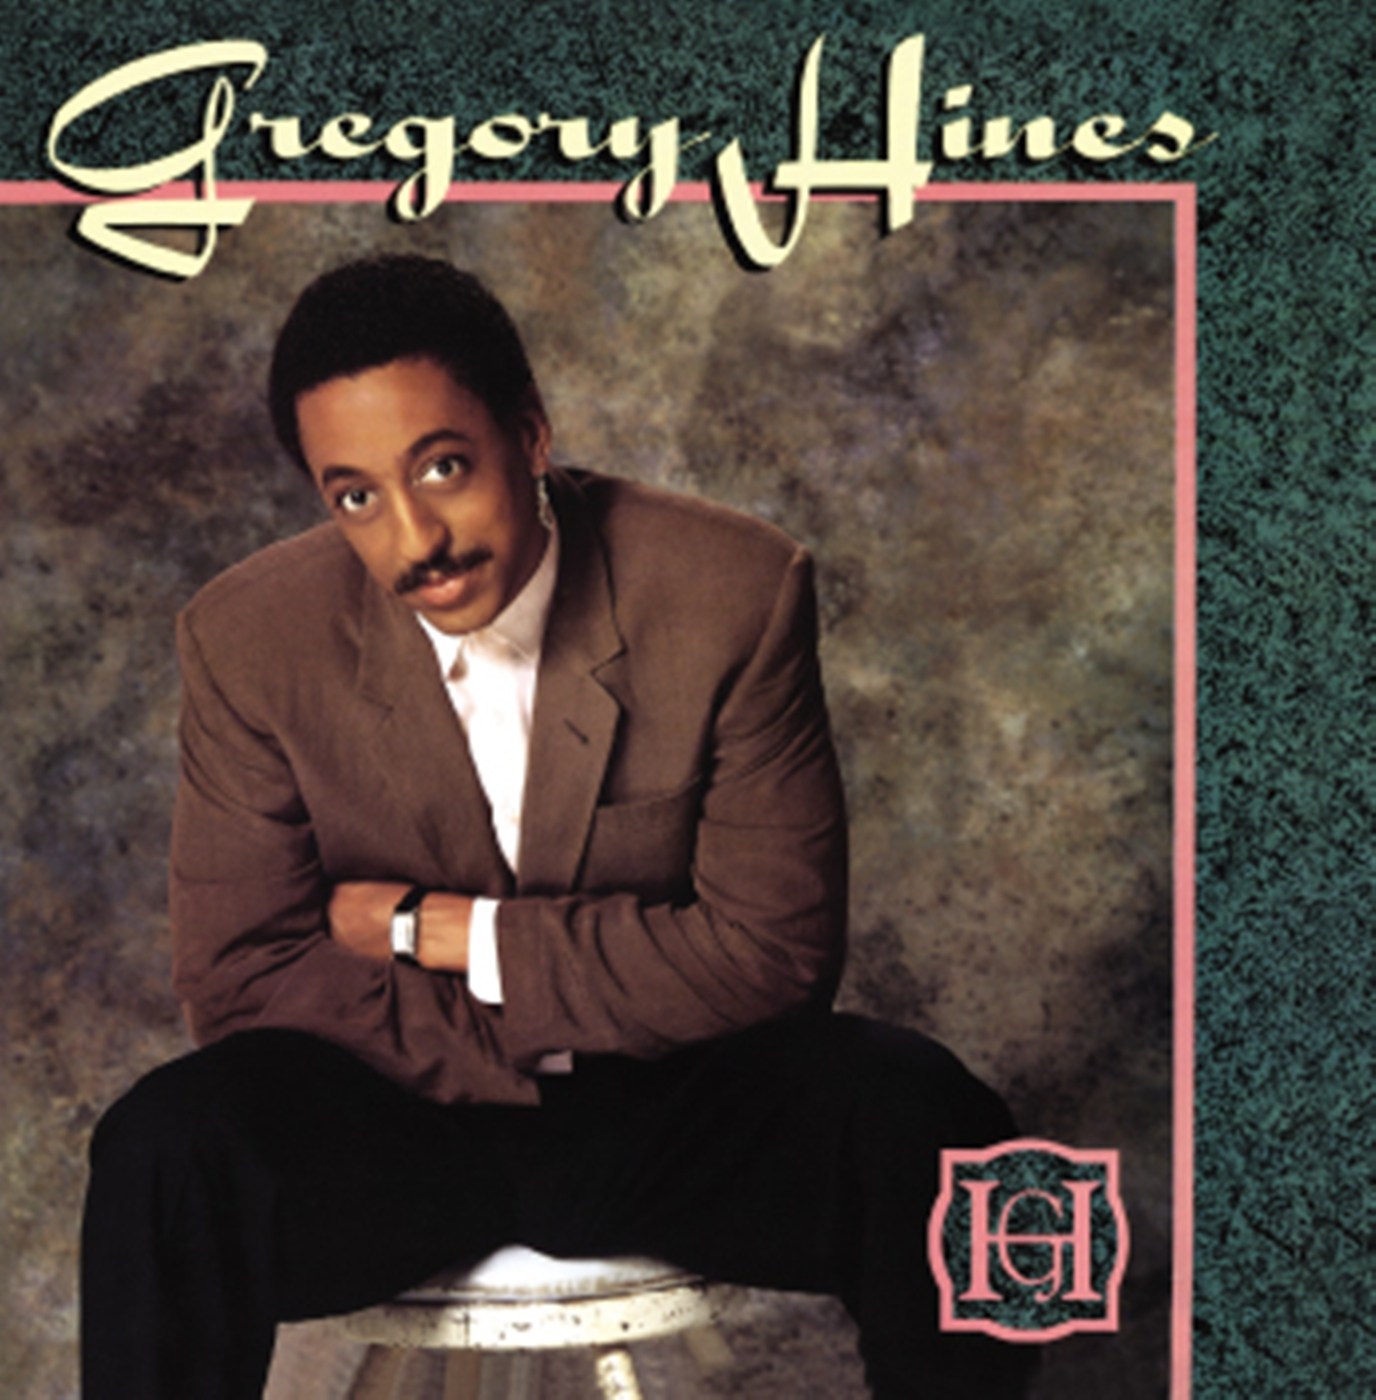 Gregory Hines/GREGORY HINES CD